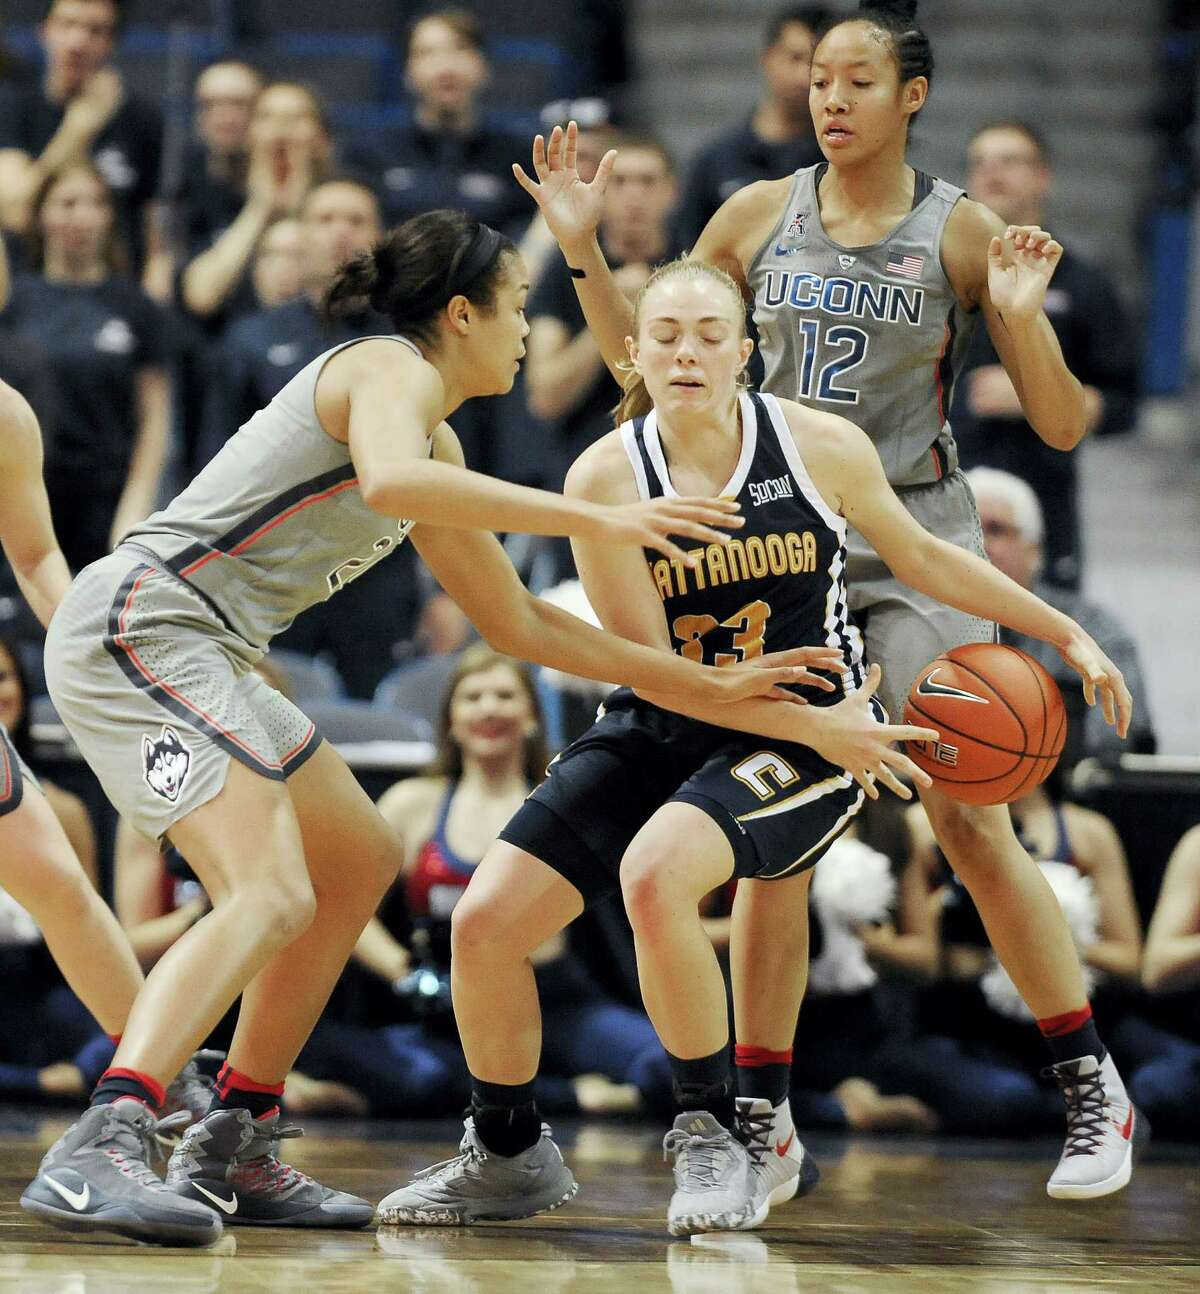 Chattanooga's Lakelyn Bouldin, center, looses the ball under pressure from Connecticut's Napheesa Collier, left, and Saniya Chong, right, in the second half of an NCAA college basketball game, Tuesday, Nov. 29, 2016, in Hartford, Conn. (AP Photo/Jessica Hill)